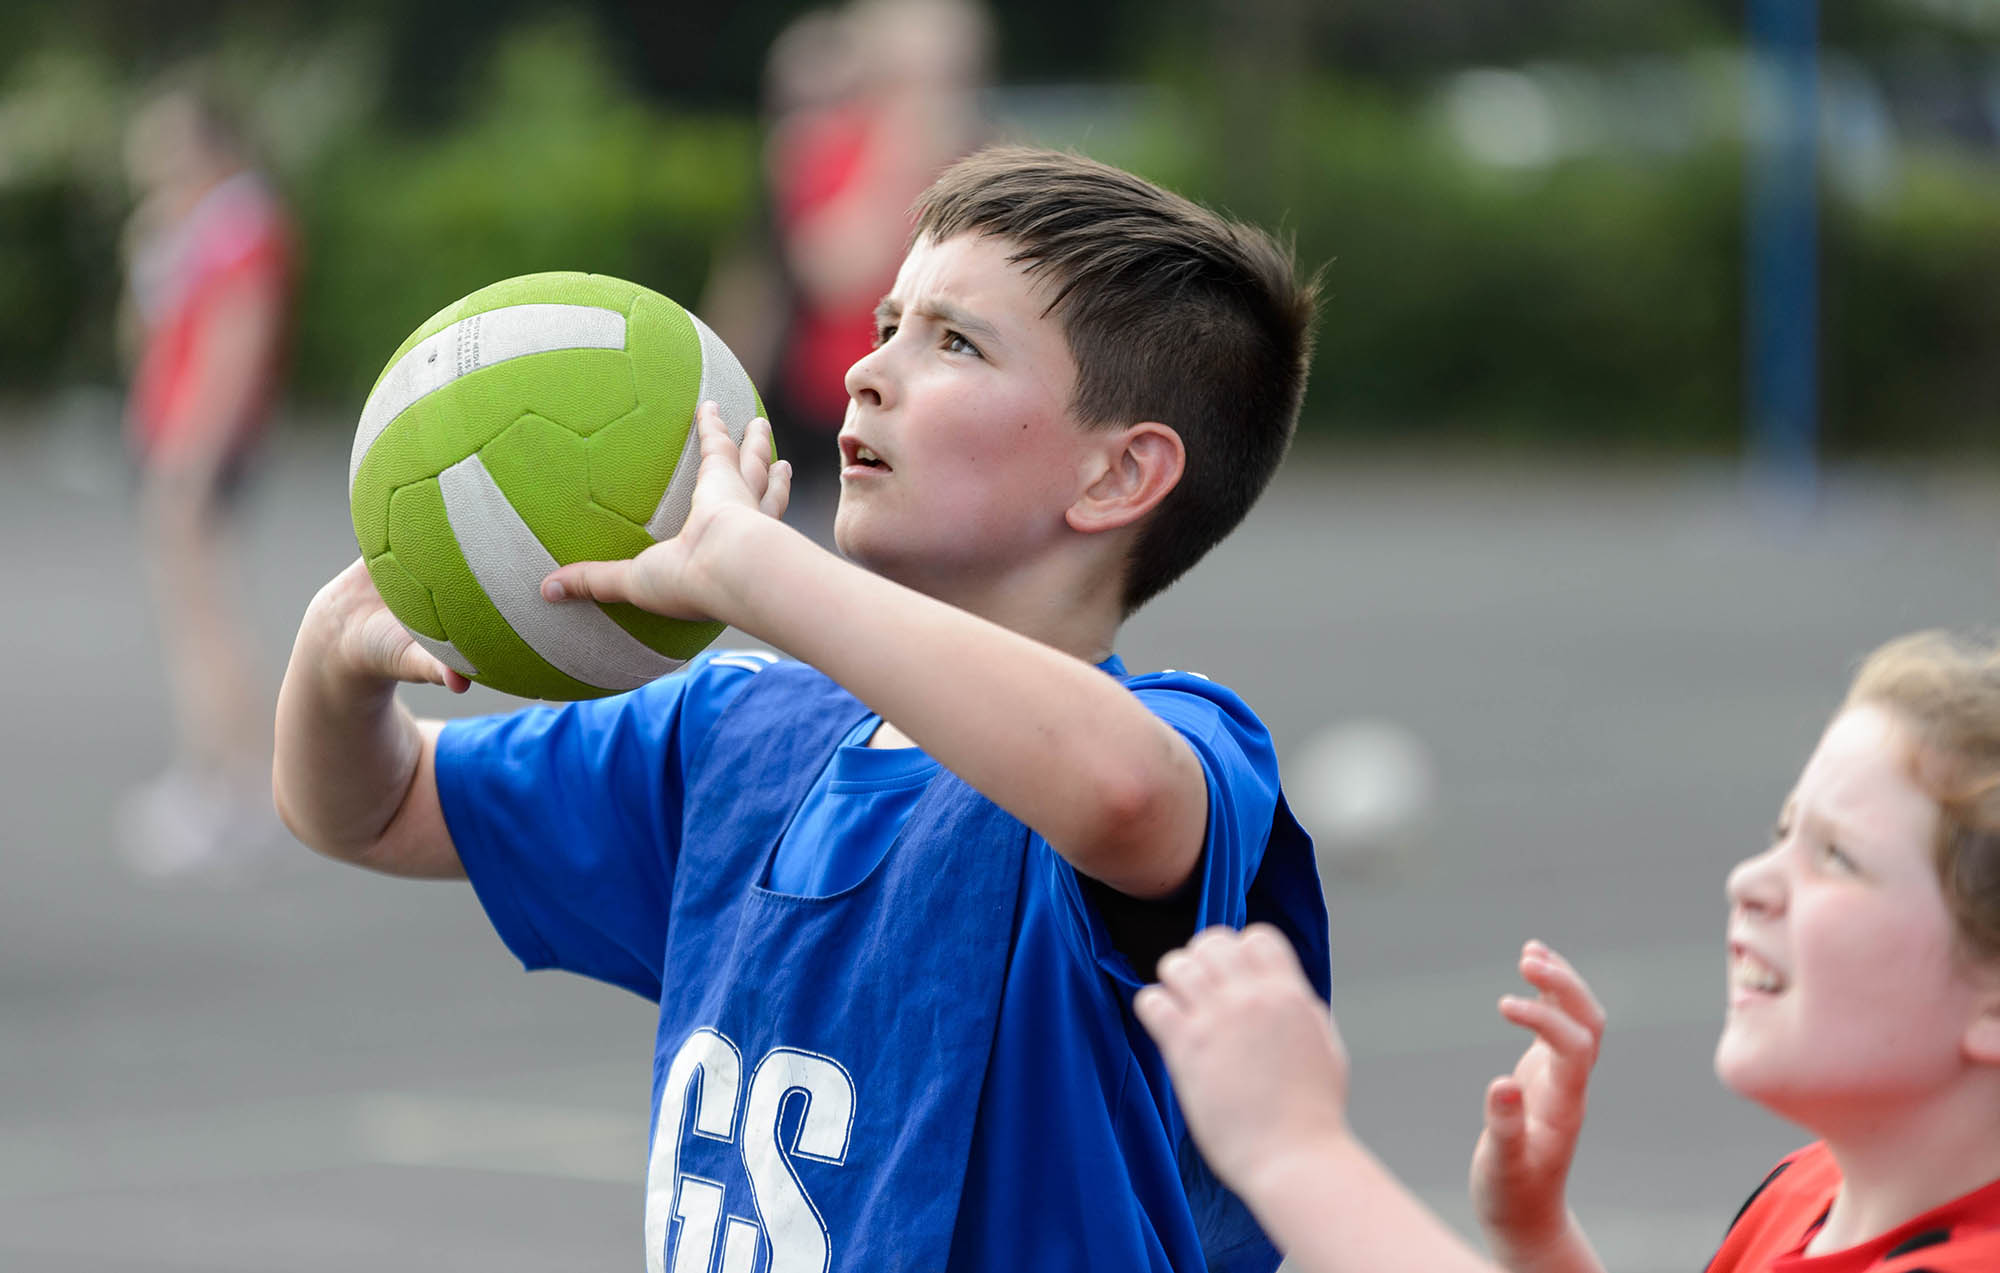 boy playing netball with ball looking up about to shoot